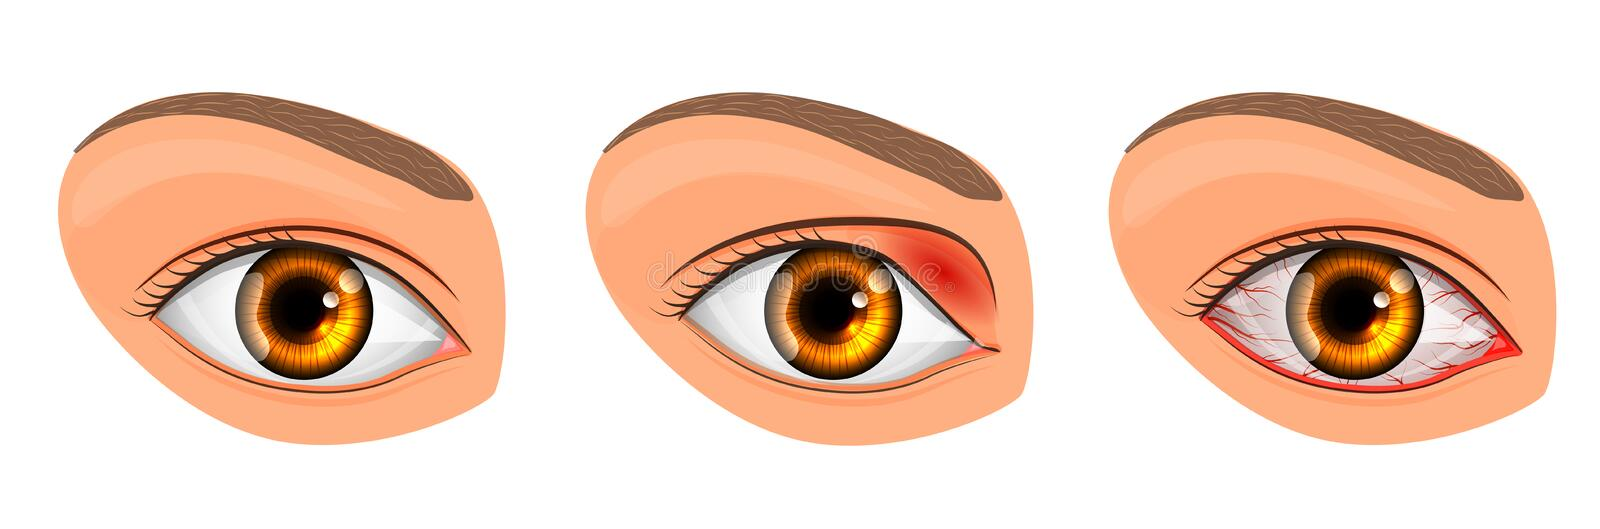 Eye suffering from conjunctivitis and styes royalty free illustration